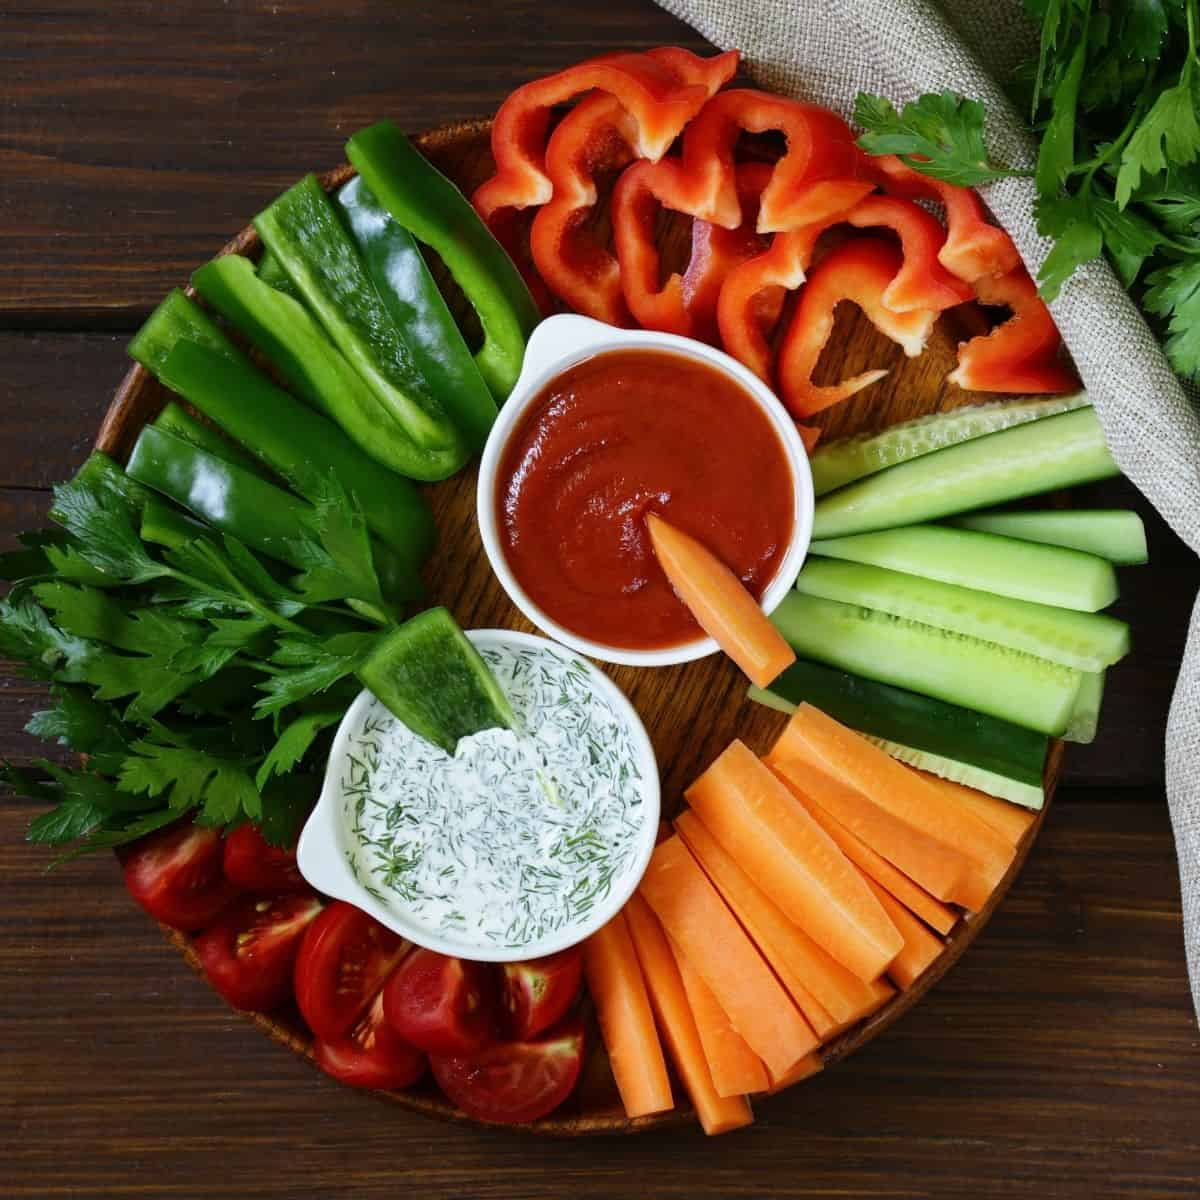 vegan appetizer plate with cut veggies, tzatziki, and red sauce